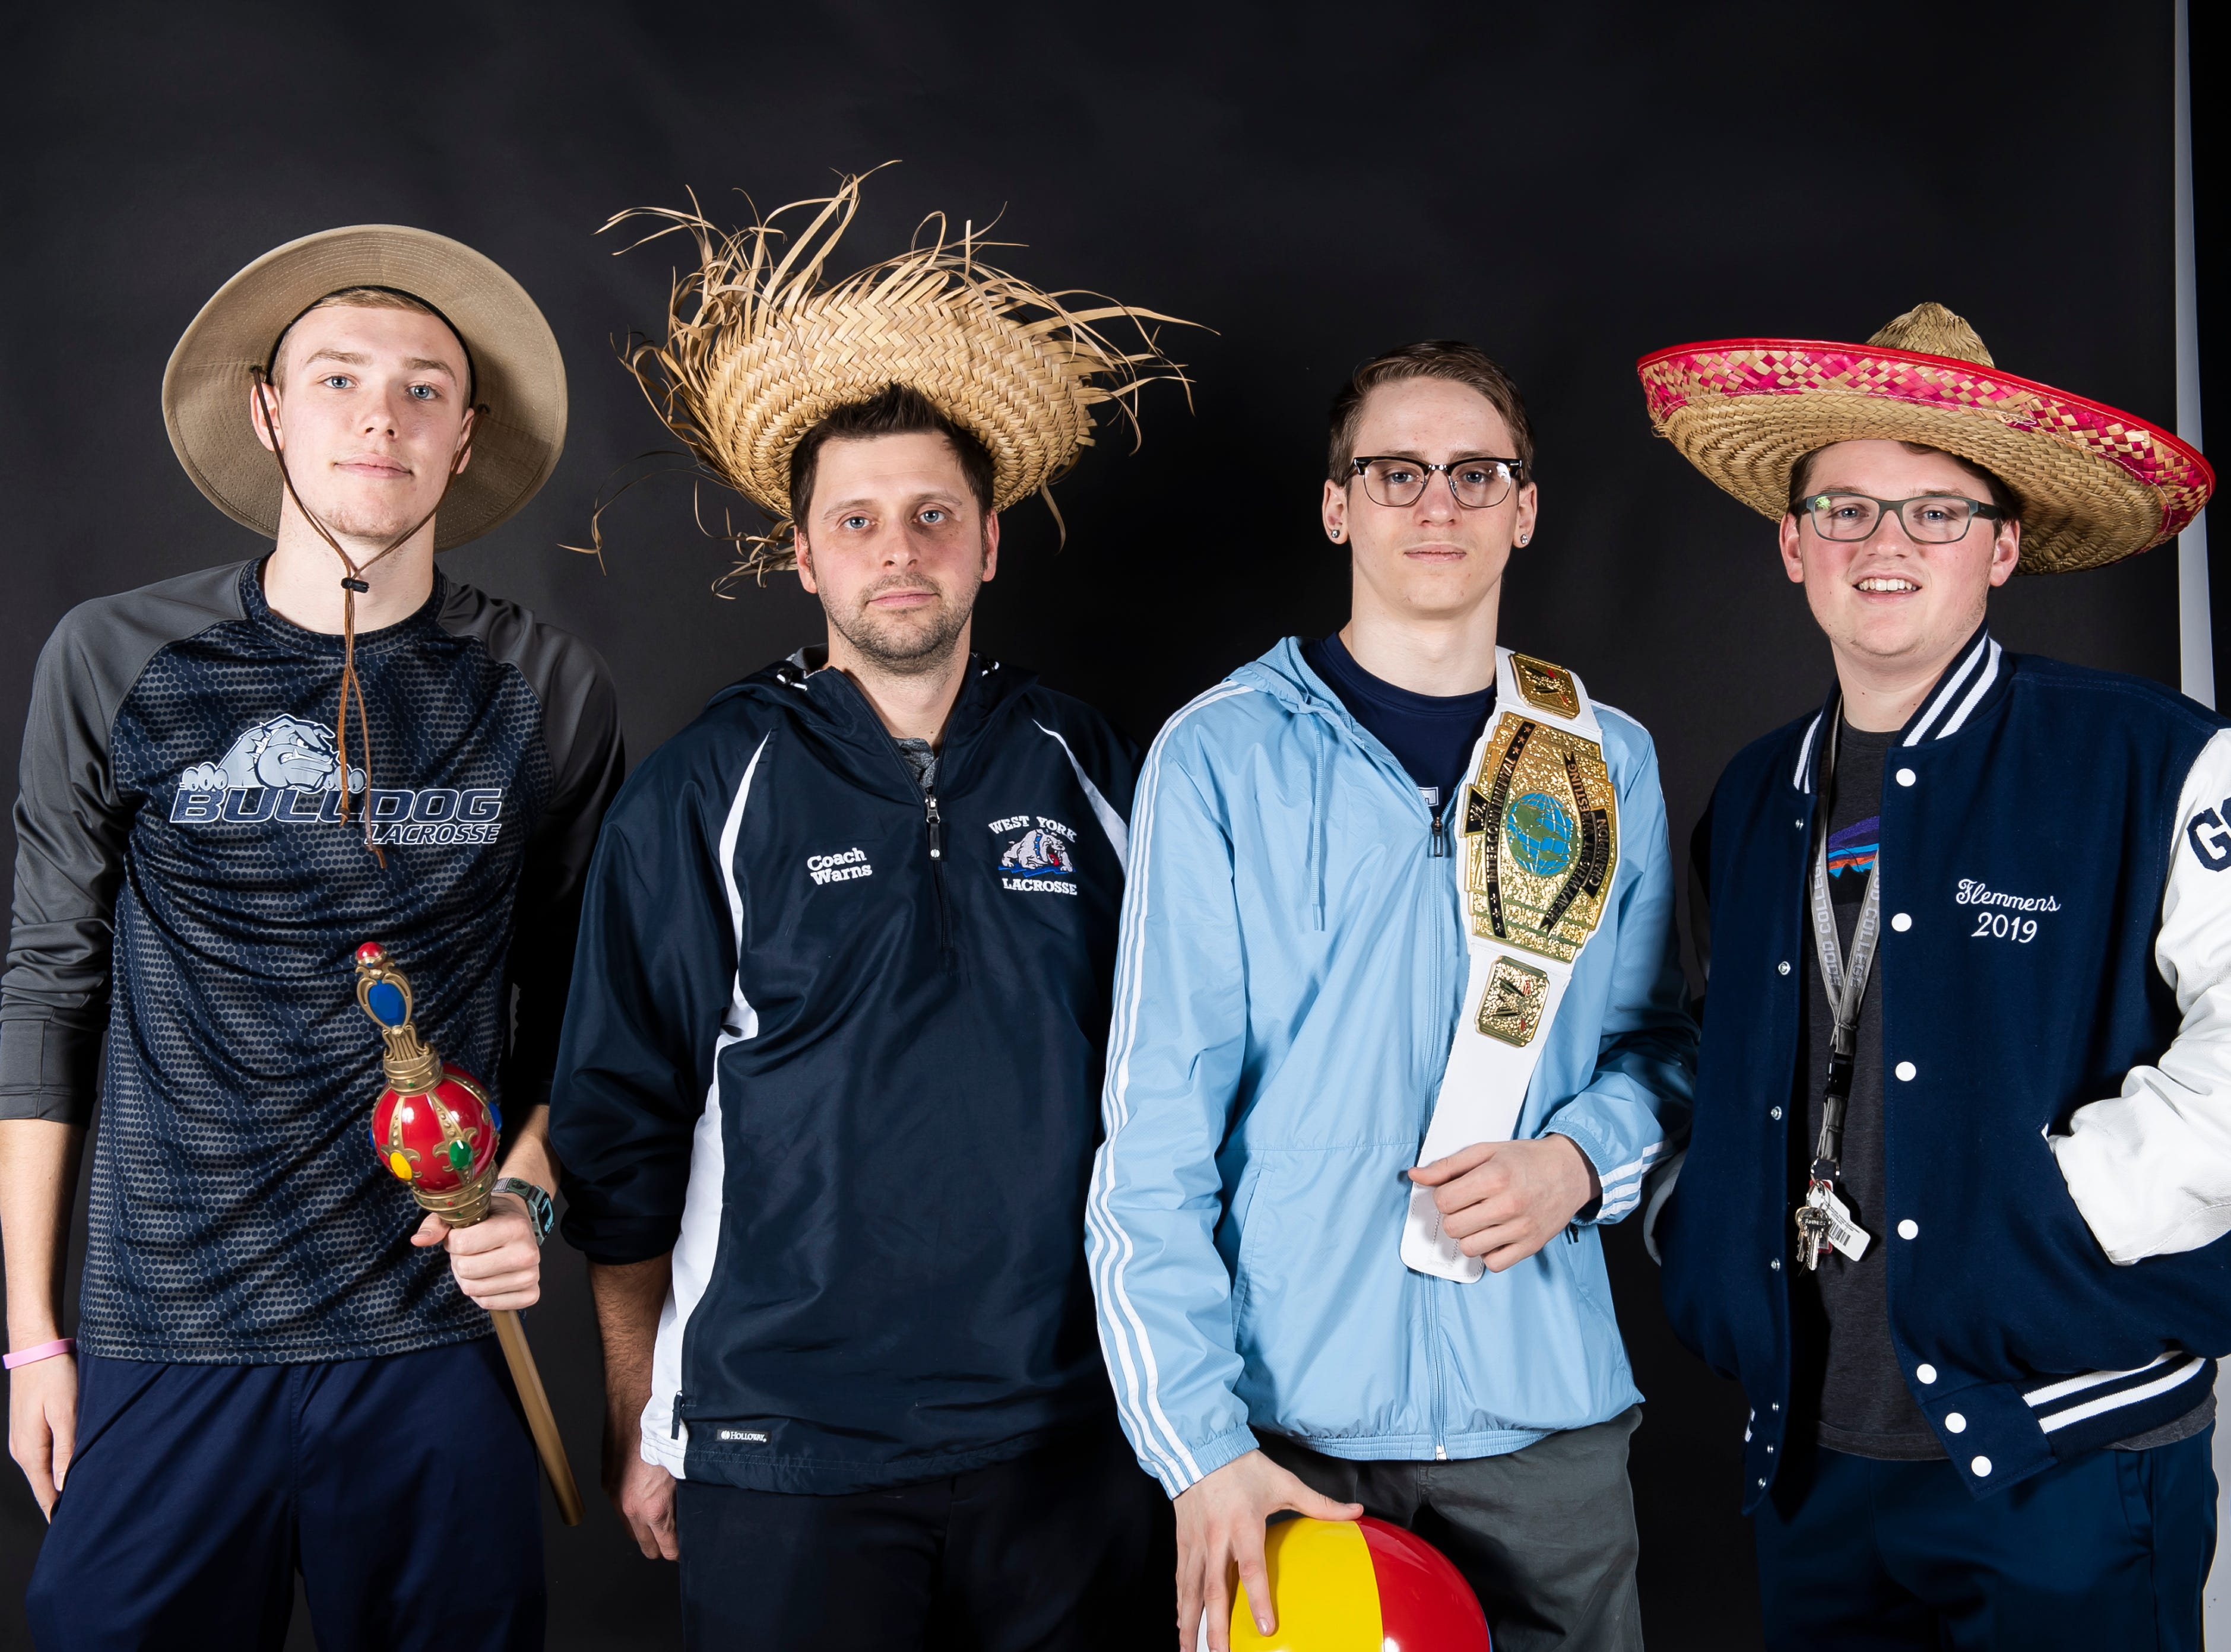 The West York lacrosse team strike a pose in the GameTimePA photo booth during spring sports media day in York Sunday, March 10, 2019.